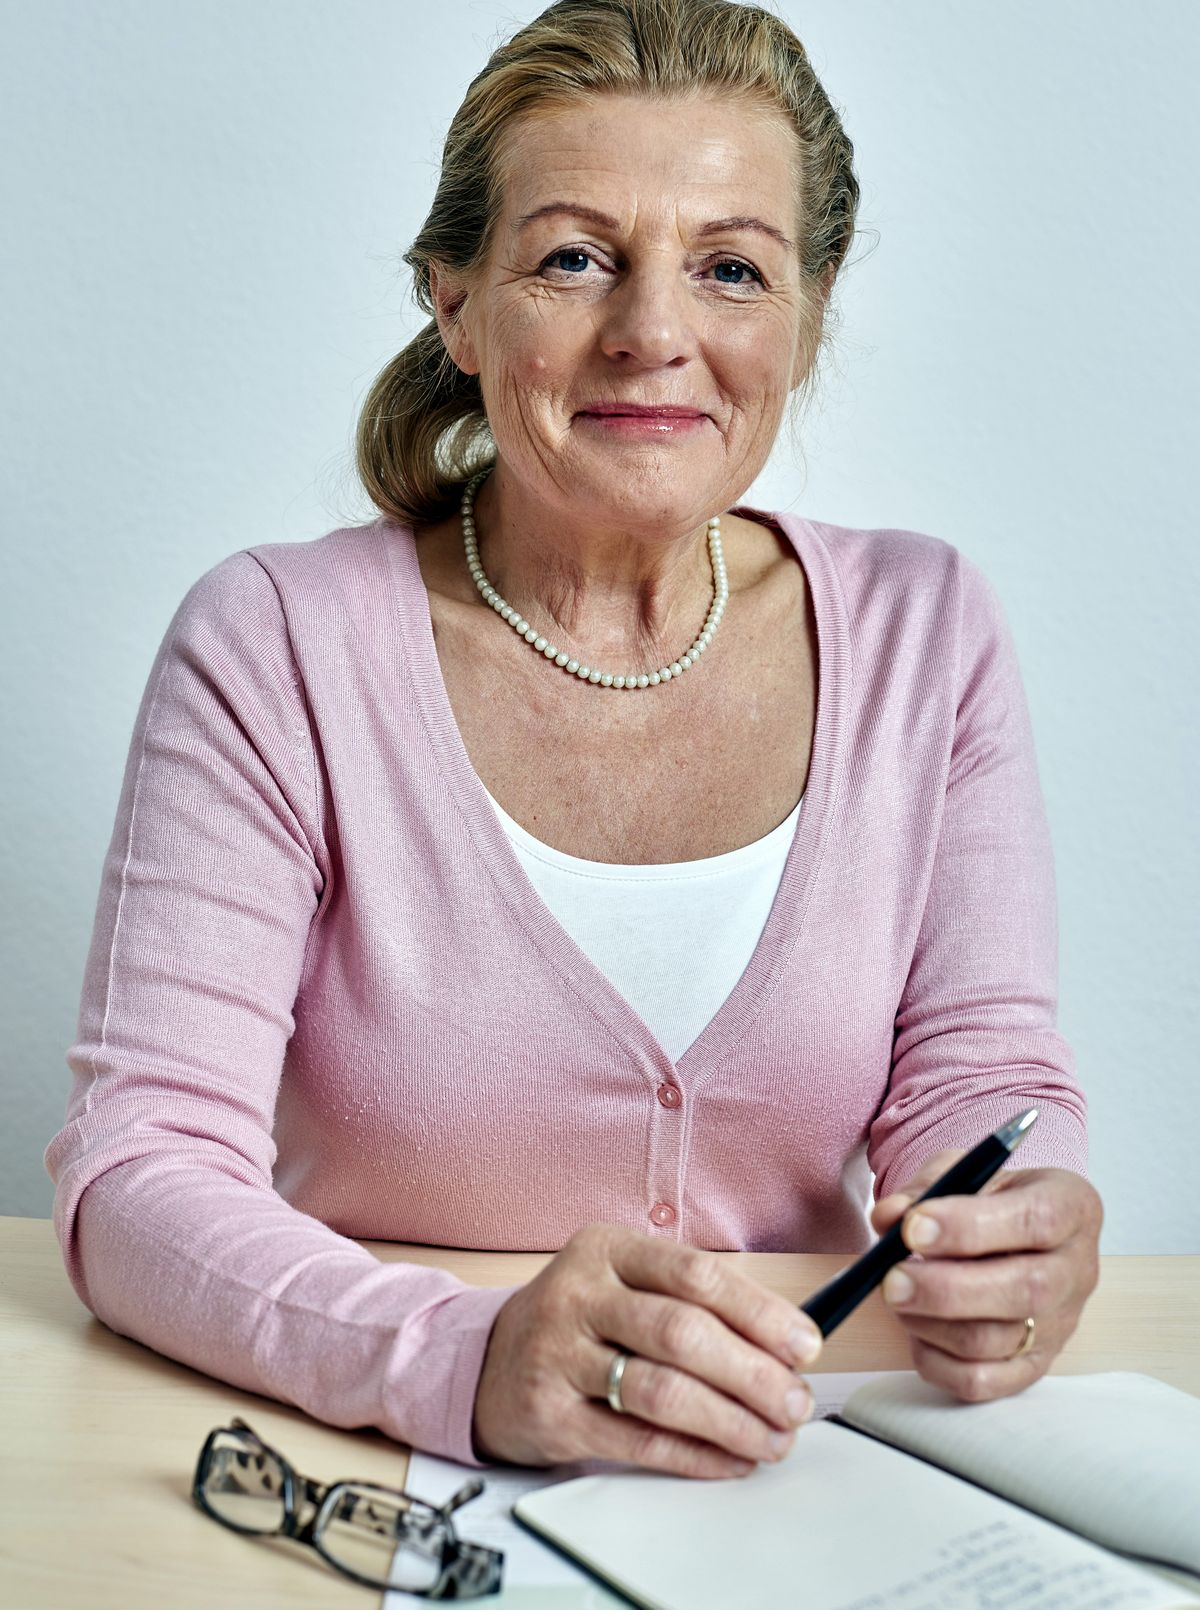 Mathilde Füssel-Wittwer